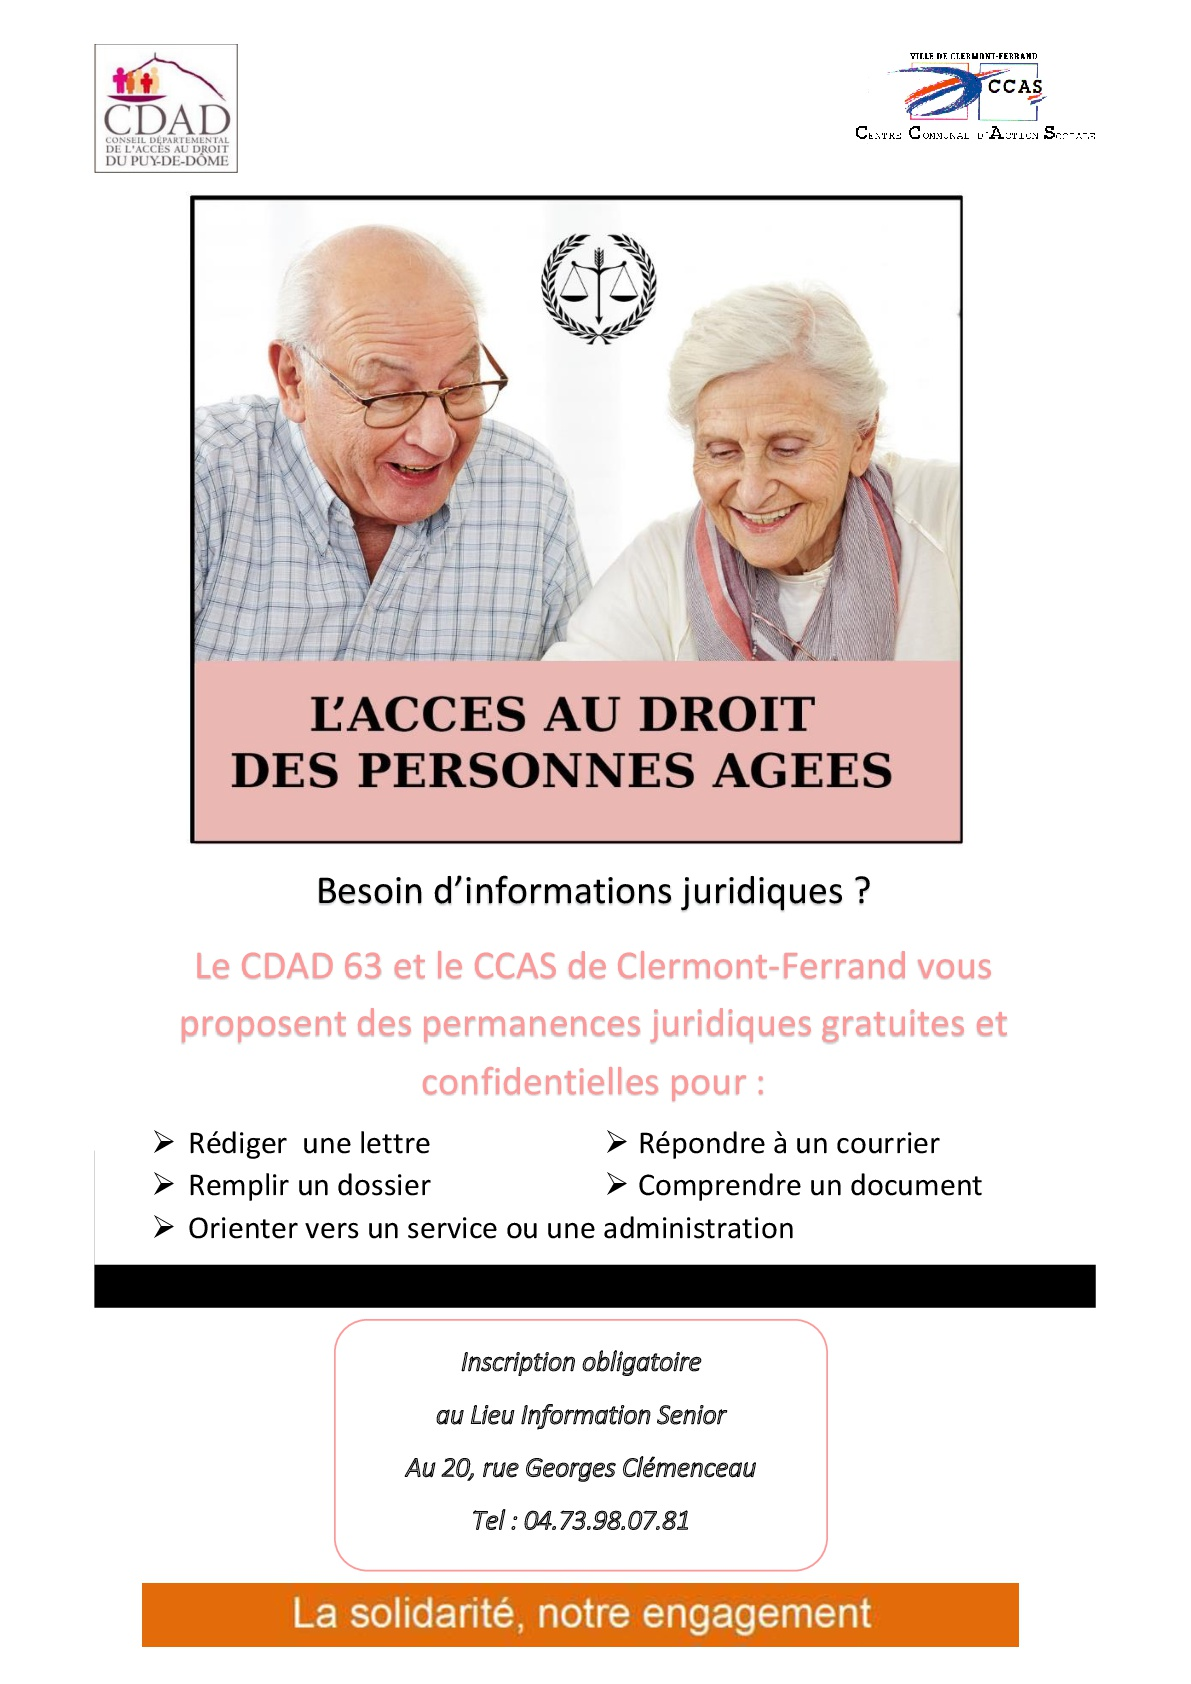 ACCES AU DROIT PERMANENCES-001